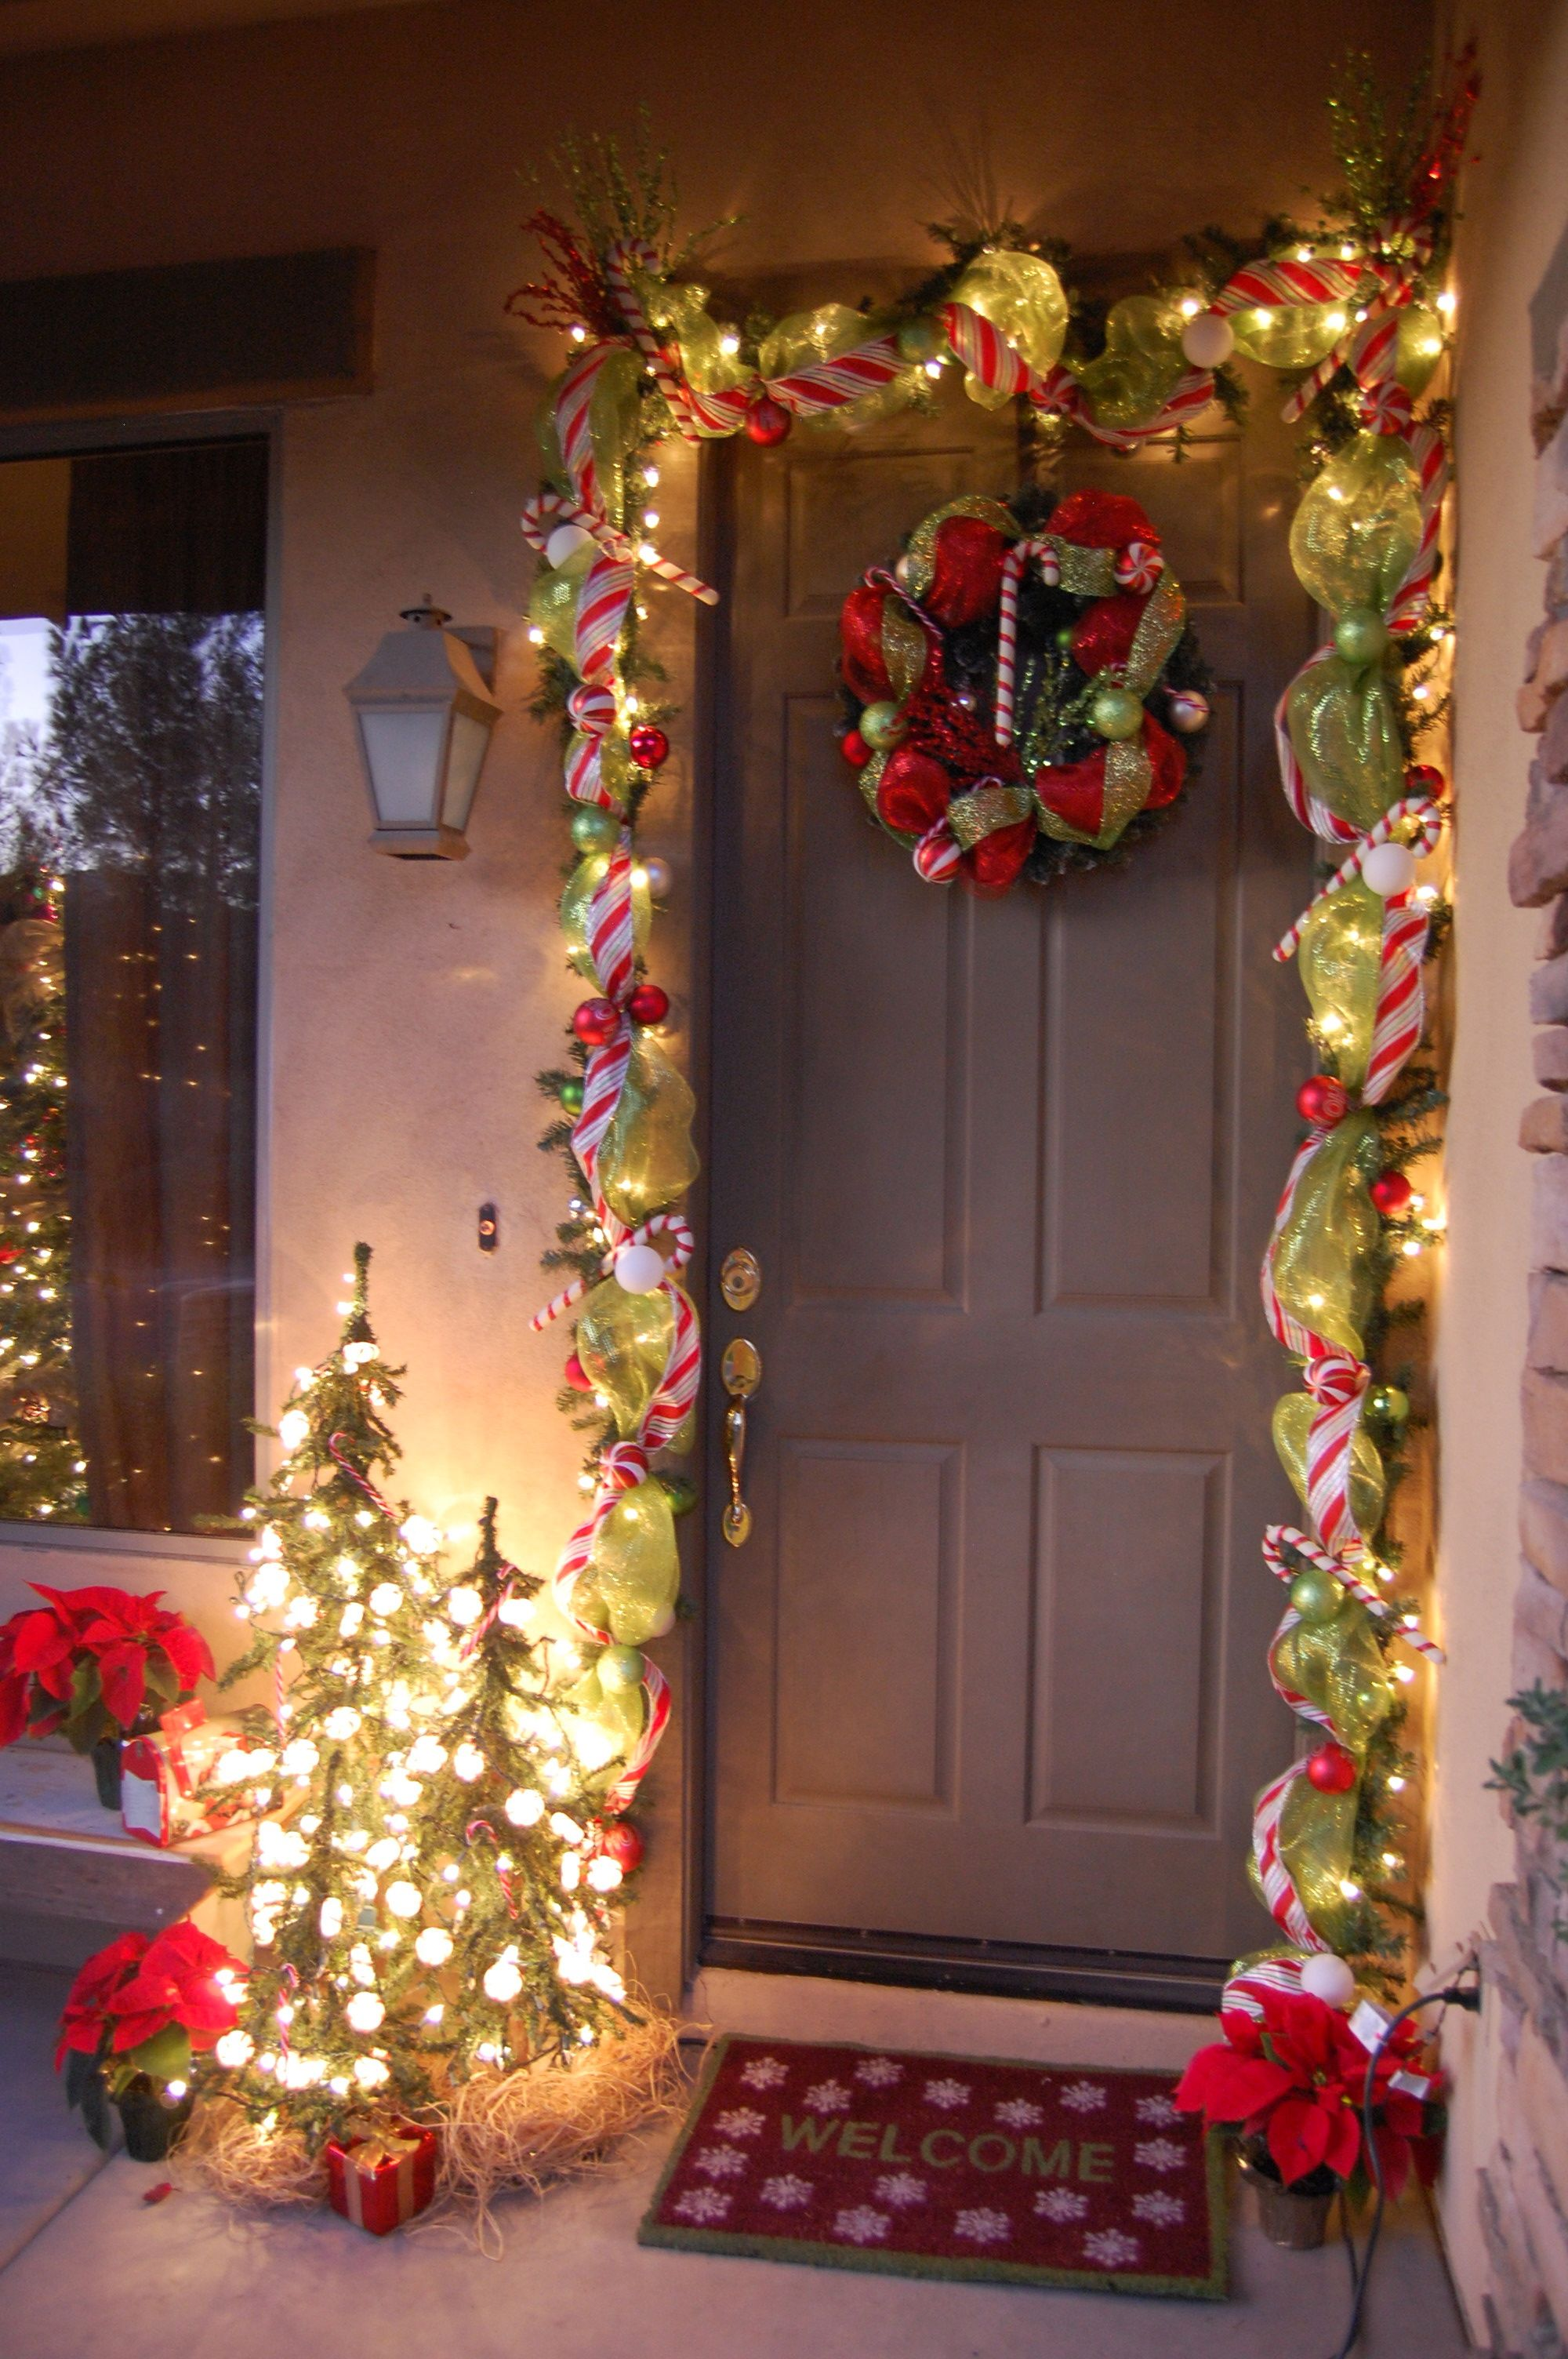 52 Beautiful Front Door Decorations And Designs Ideas: Front Door Holiday Decorations SIMPLE ENOUGH FOR A GREAT BACK DOOR TOO